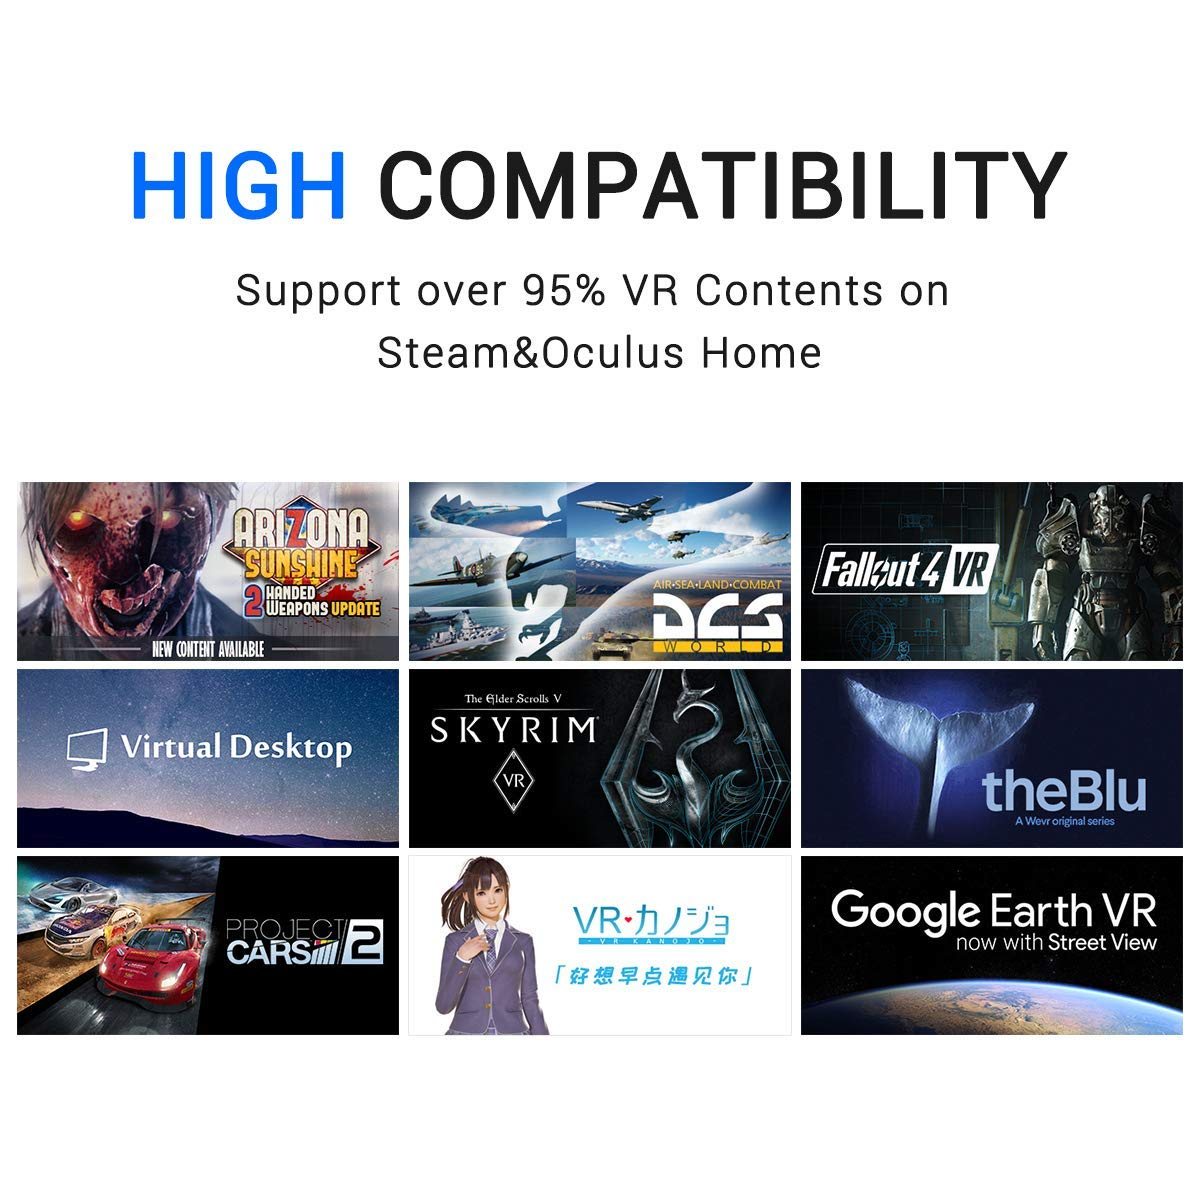 Pimax 5K Plus VR Virtual Reality Headset with Wide 200°FOV, Dual 2560x1440p  RGB LCD Panels & 6 DOF Tracking, 1-Year Warranty, [Headset Only]